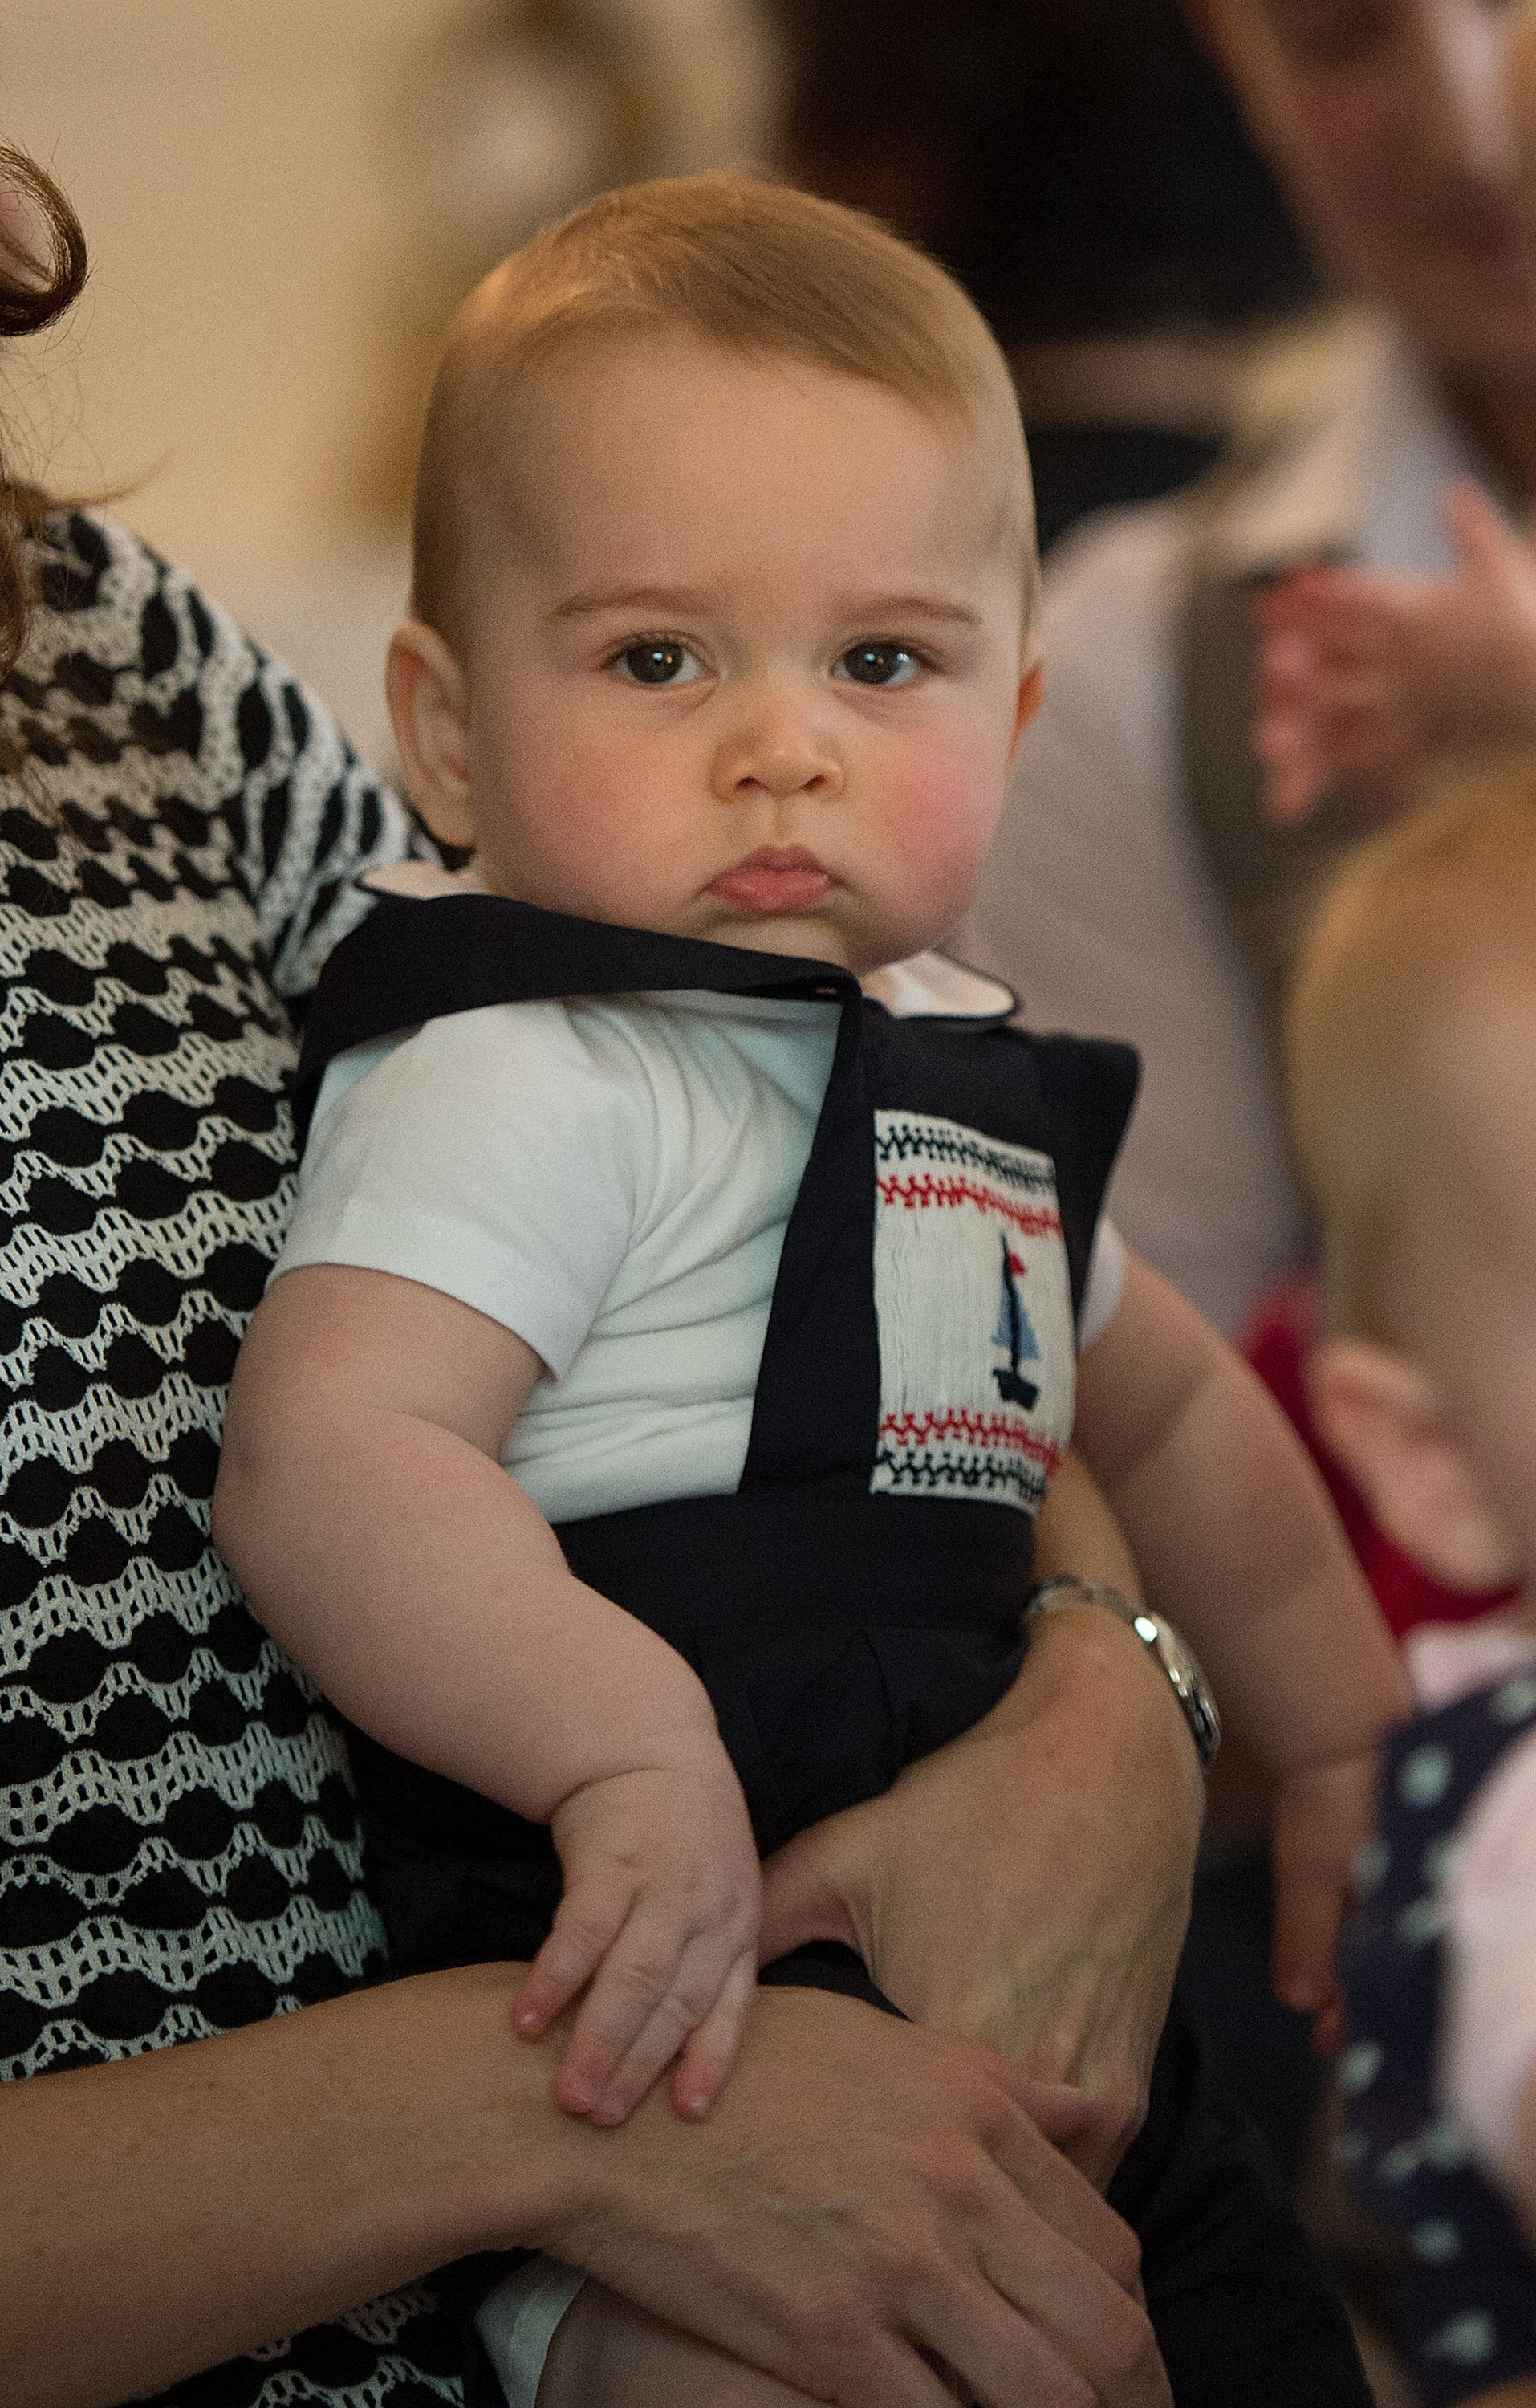 Prince George of Cambridge during his first official engagement at Government House on April 9, 2014 in Wellington, New Zealand.